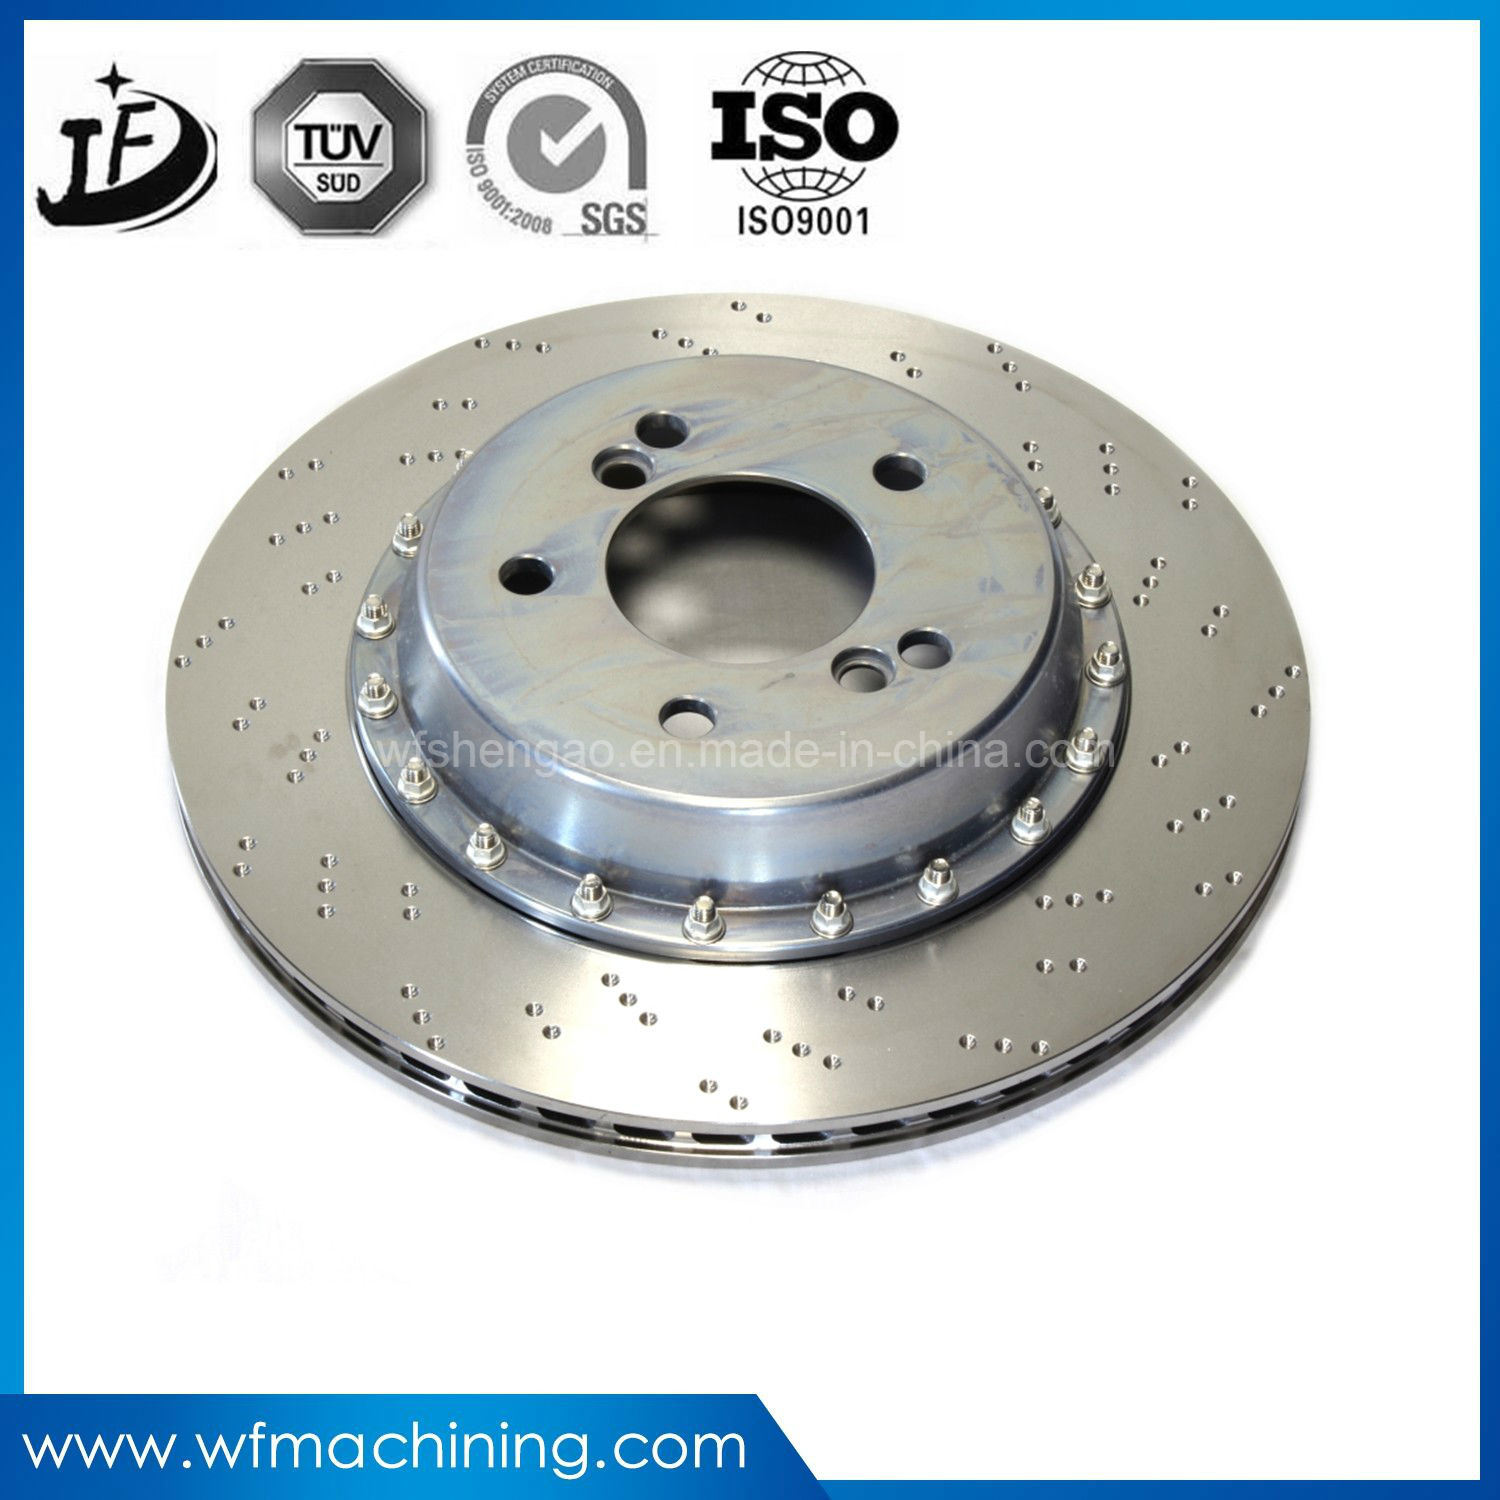 OEM Customizd Steel Casting Iron Foundry/Casting Motorcycle Brake Discs